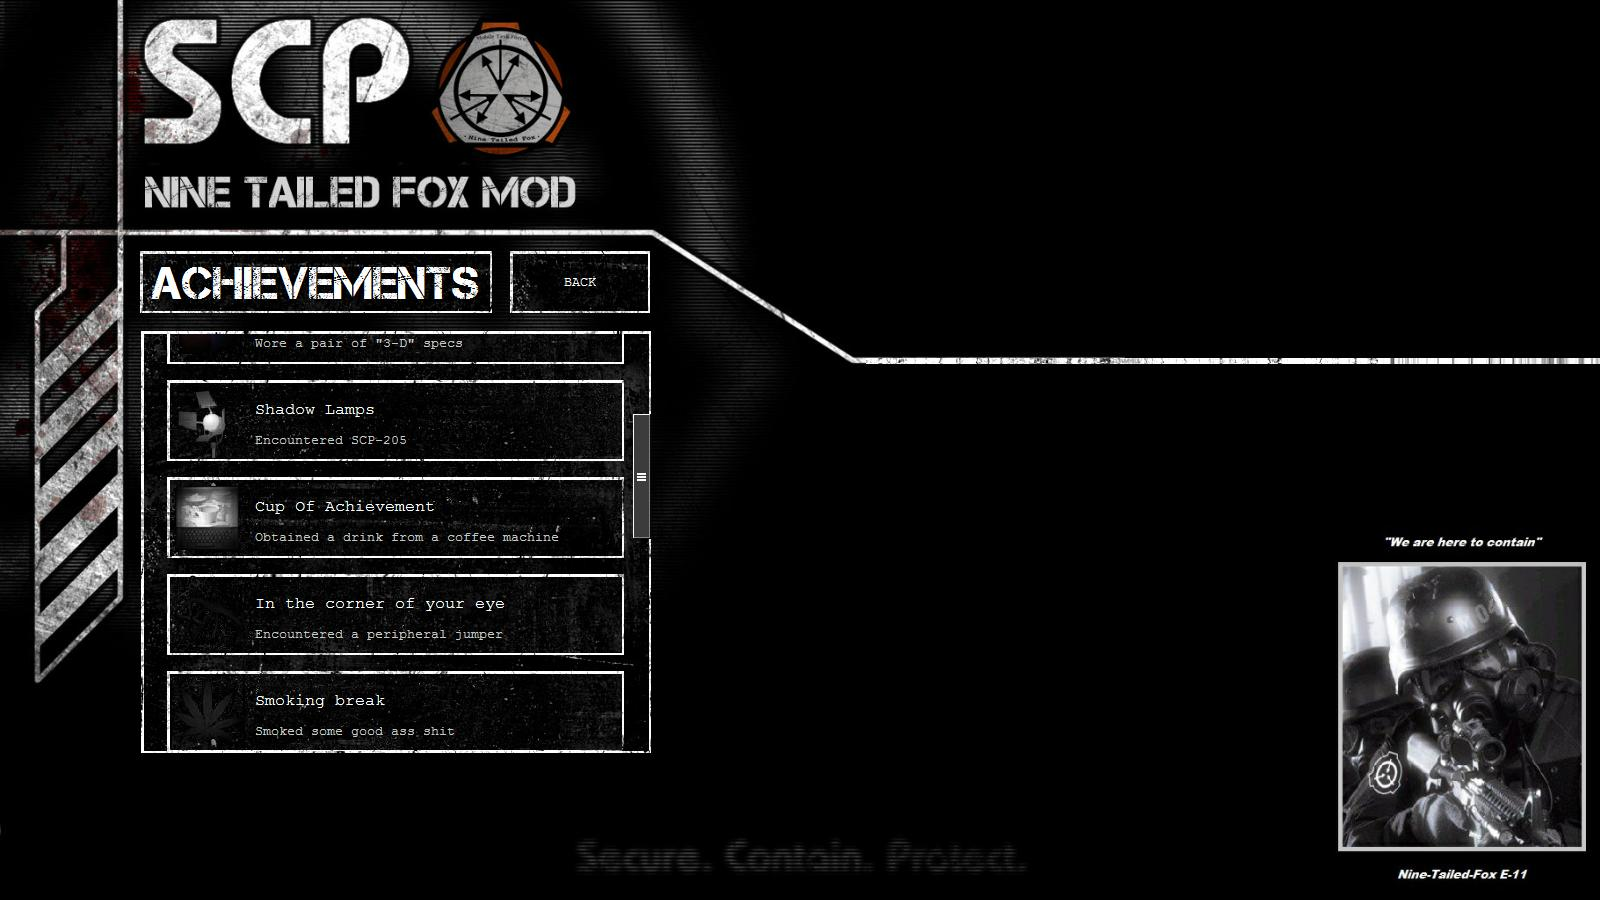 New Achievements Menu Screenshot 1 Image Scp Cb Nine Tailed Fox